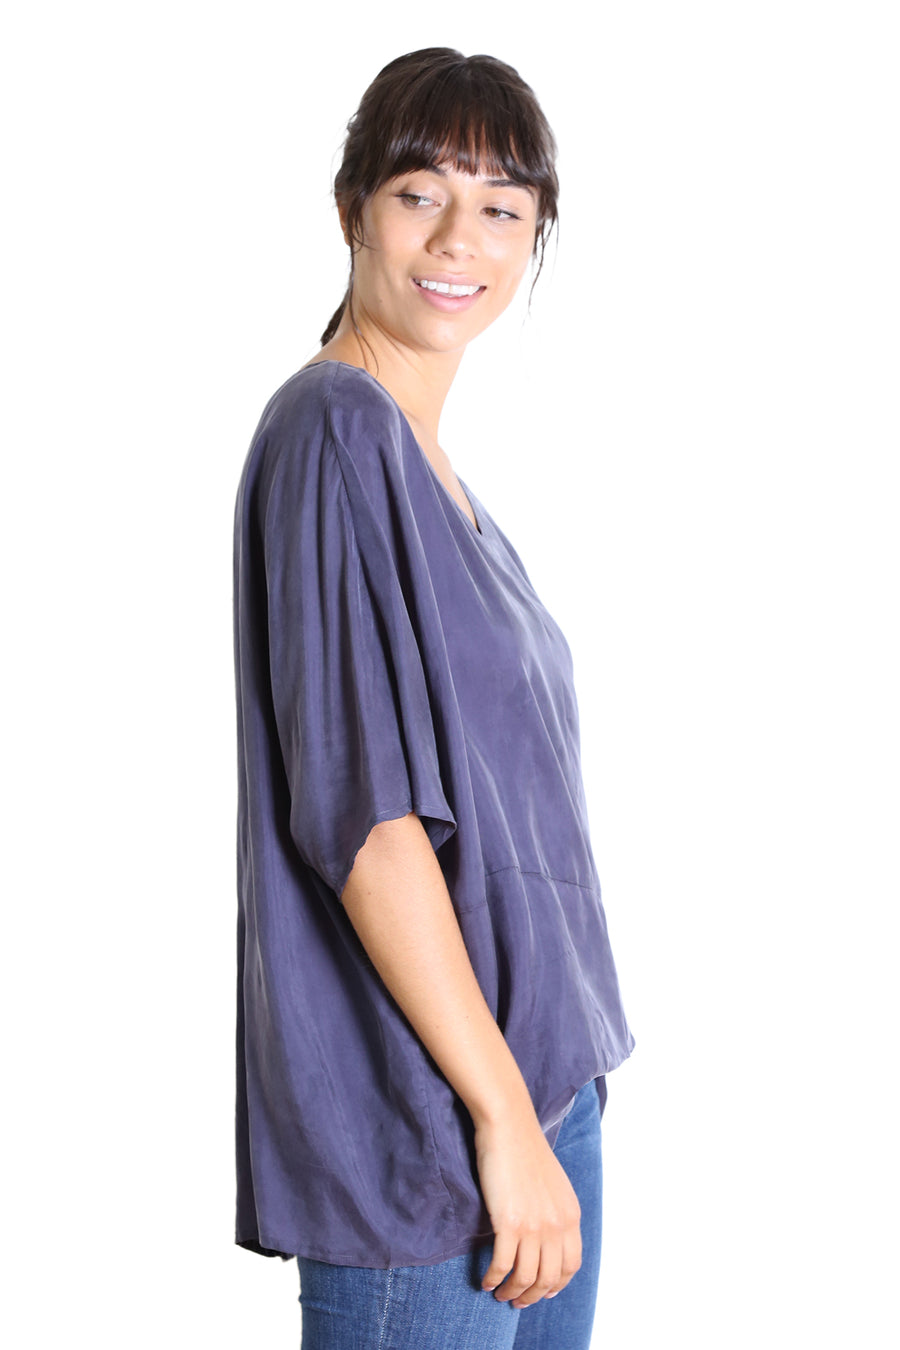 Marilyn Top - Navy - Shop Online At Mookah - mookah.com.au